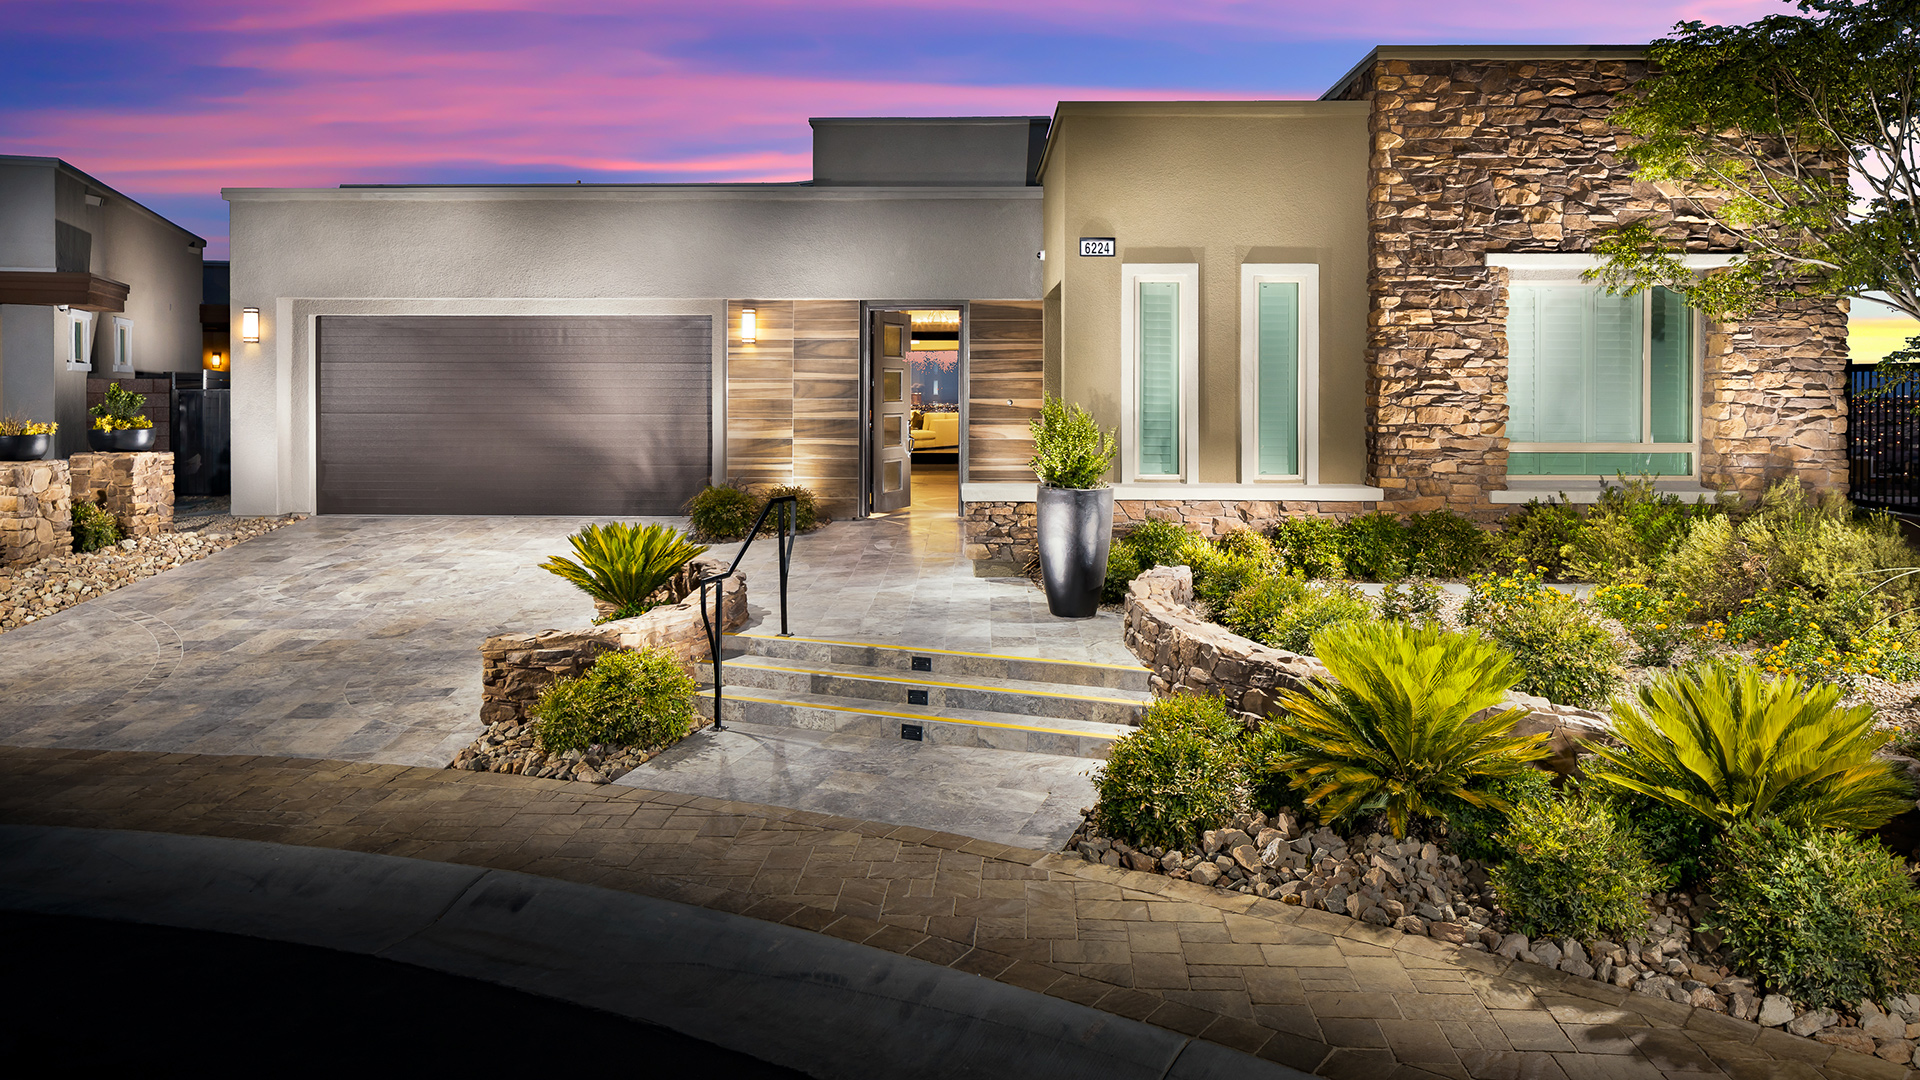 Homes For Sale In Southwest Las Vegas Las Vegas Nv New Homes For Sale Ironwood